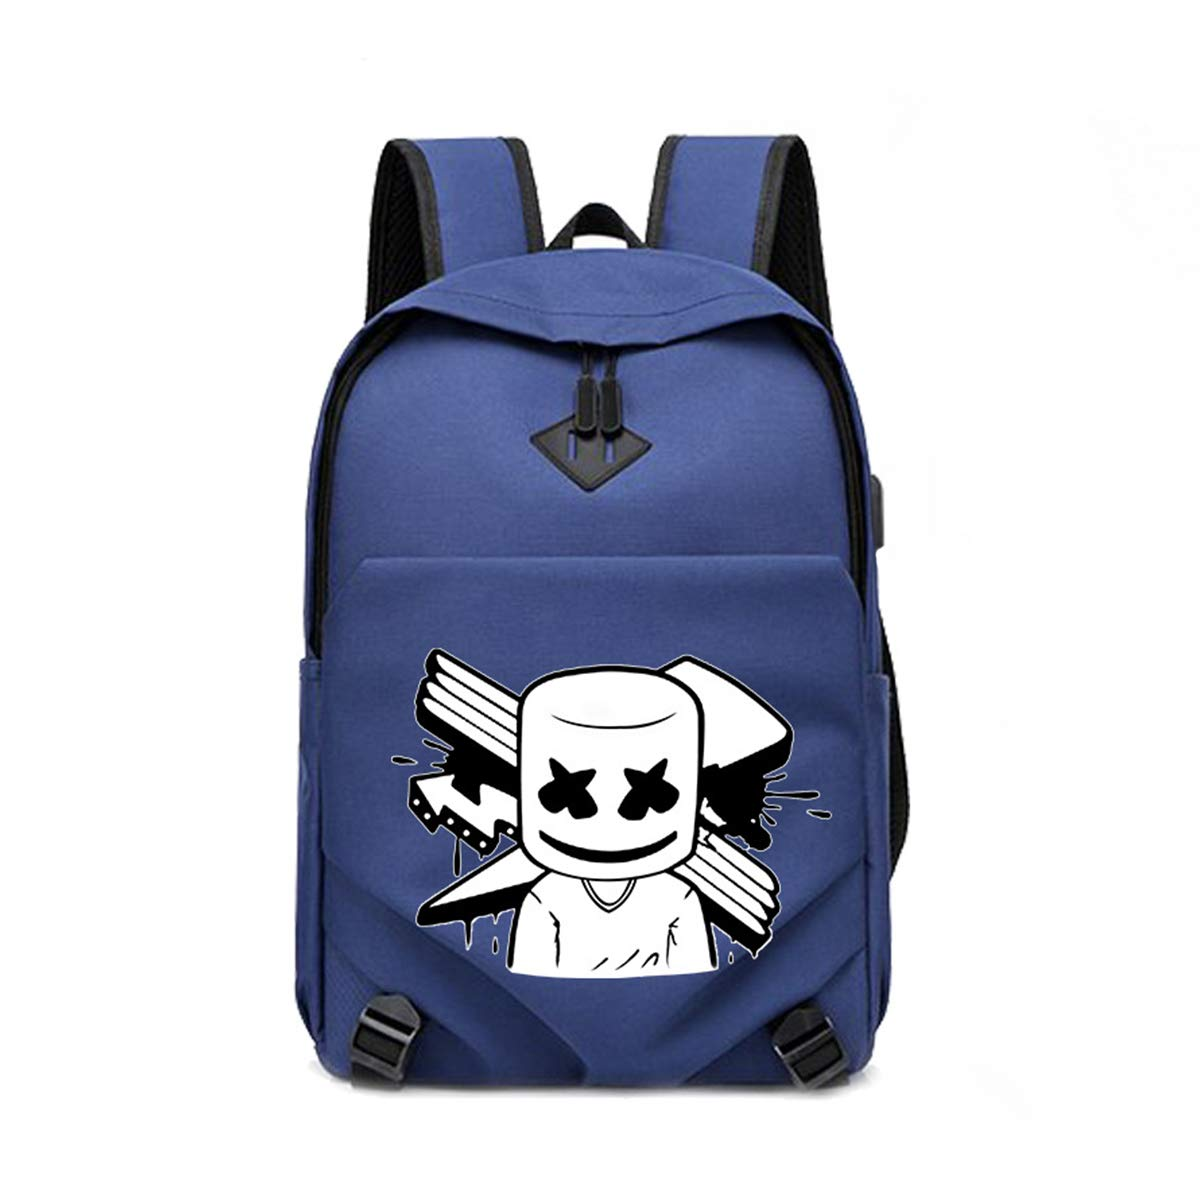 DJ Backpack Luminous Charge Port Travel Laptop Bag Bar Daypack with USB